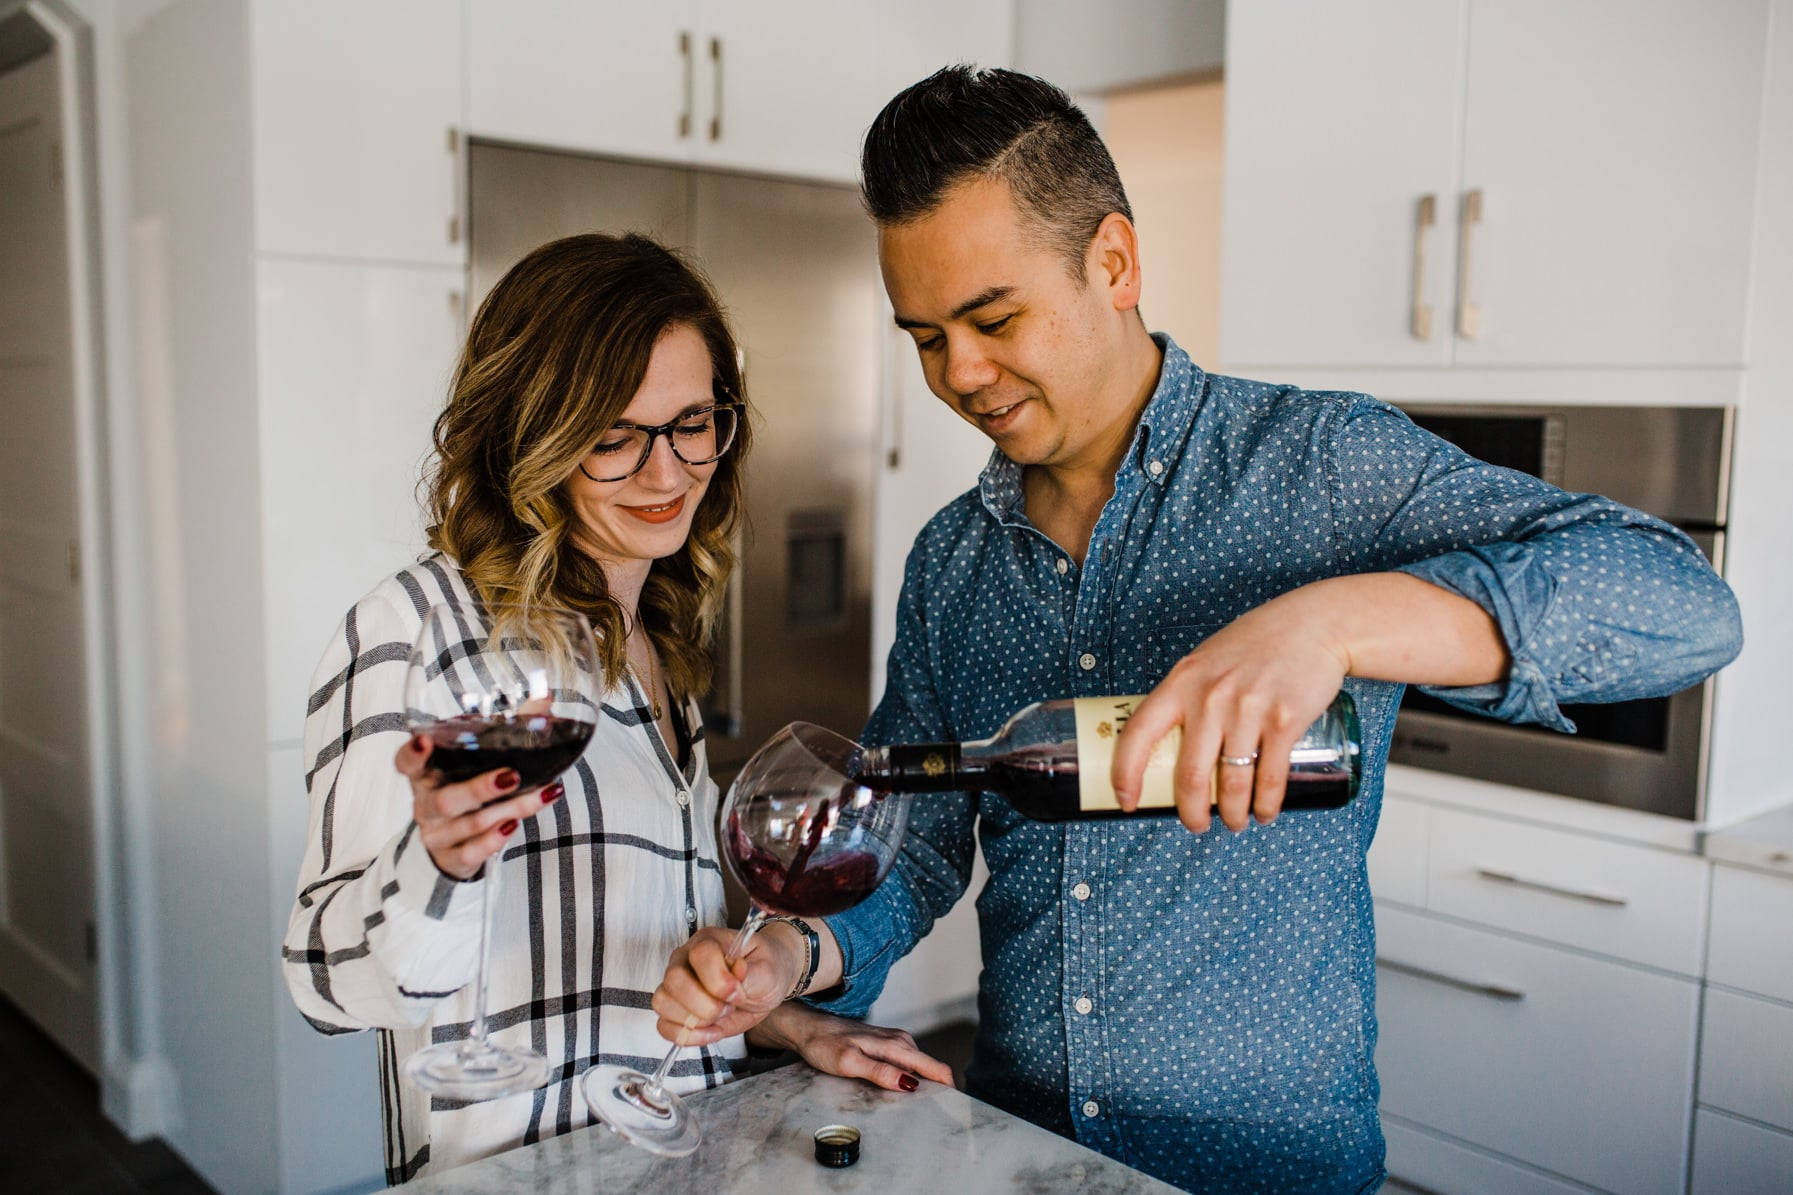 Couple pour wine - Cozy At-Home Photos Lifestyle